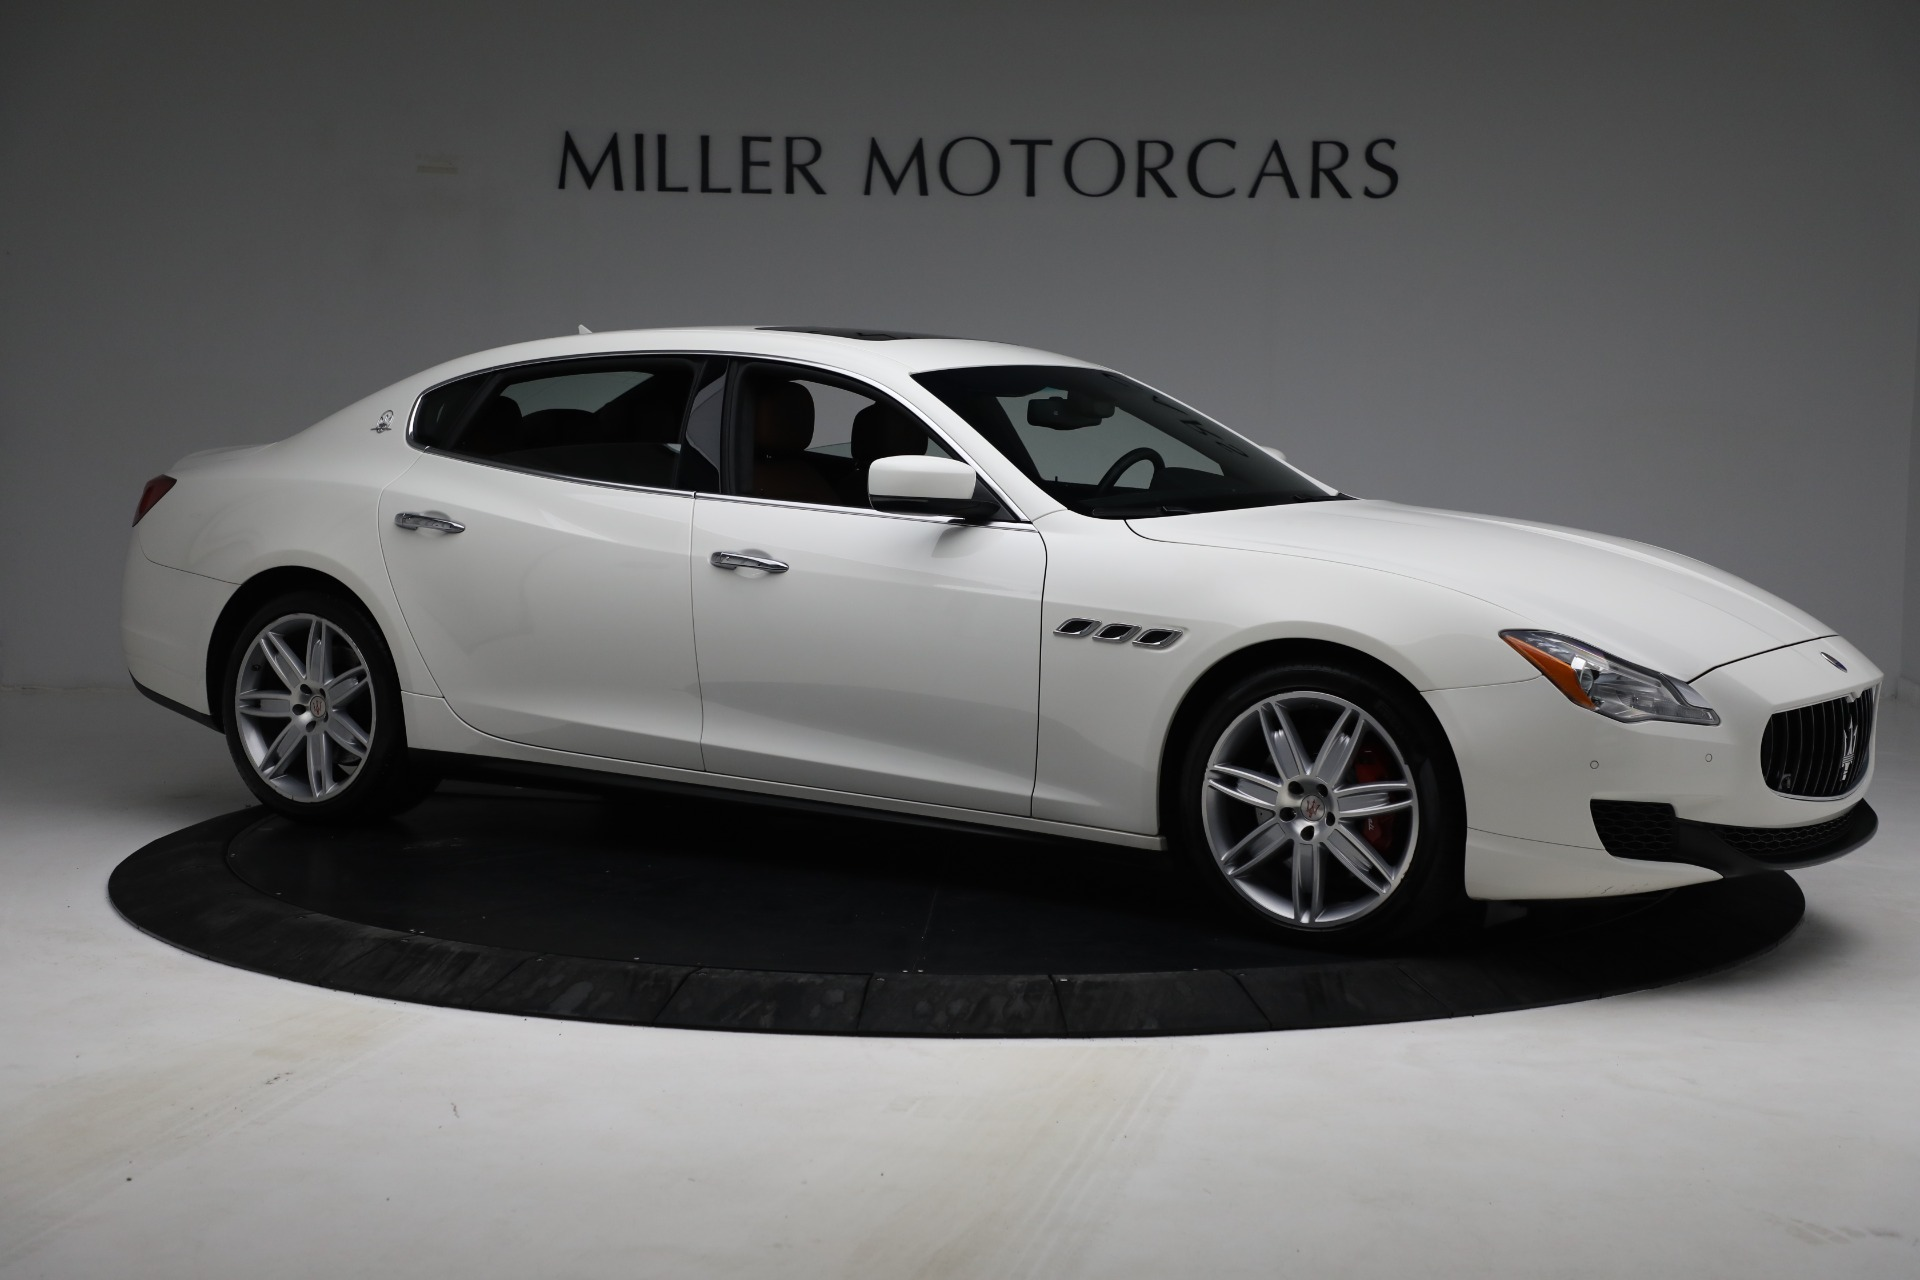 Used 2015 Maserati Quattroporte S Q4 For Sale In Greenwich, CT. Alfa Romeo of Greenwich, 7469 2915_p9